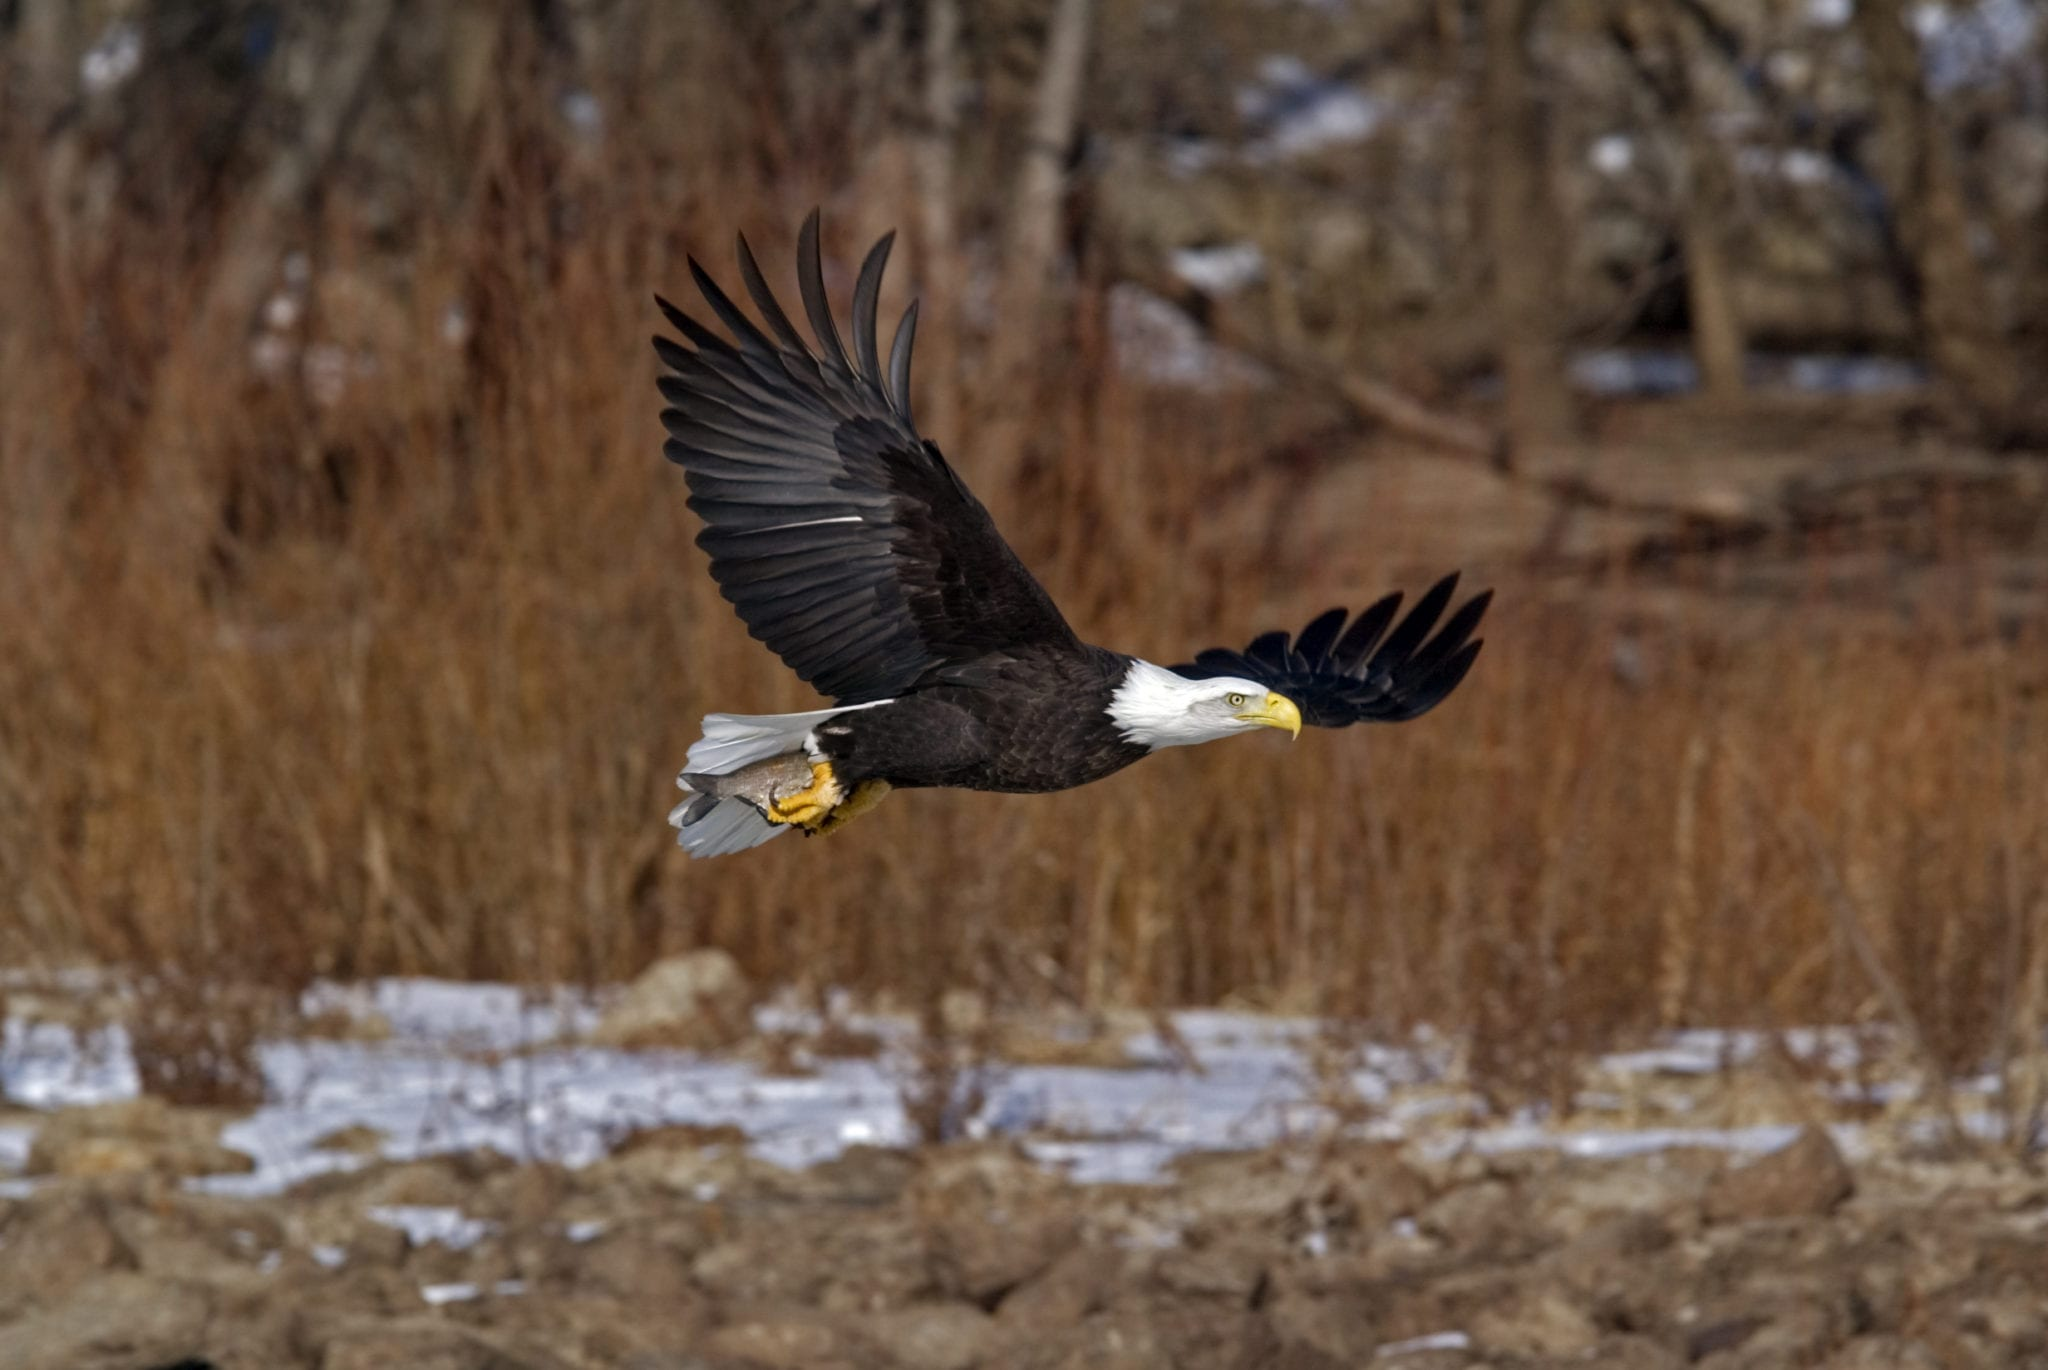 A Bald Eagle flying away from river with fish